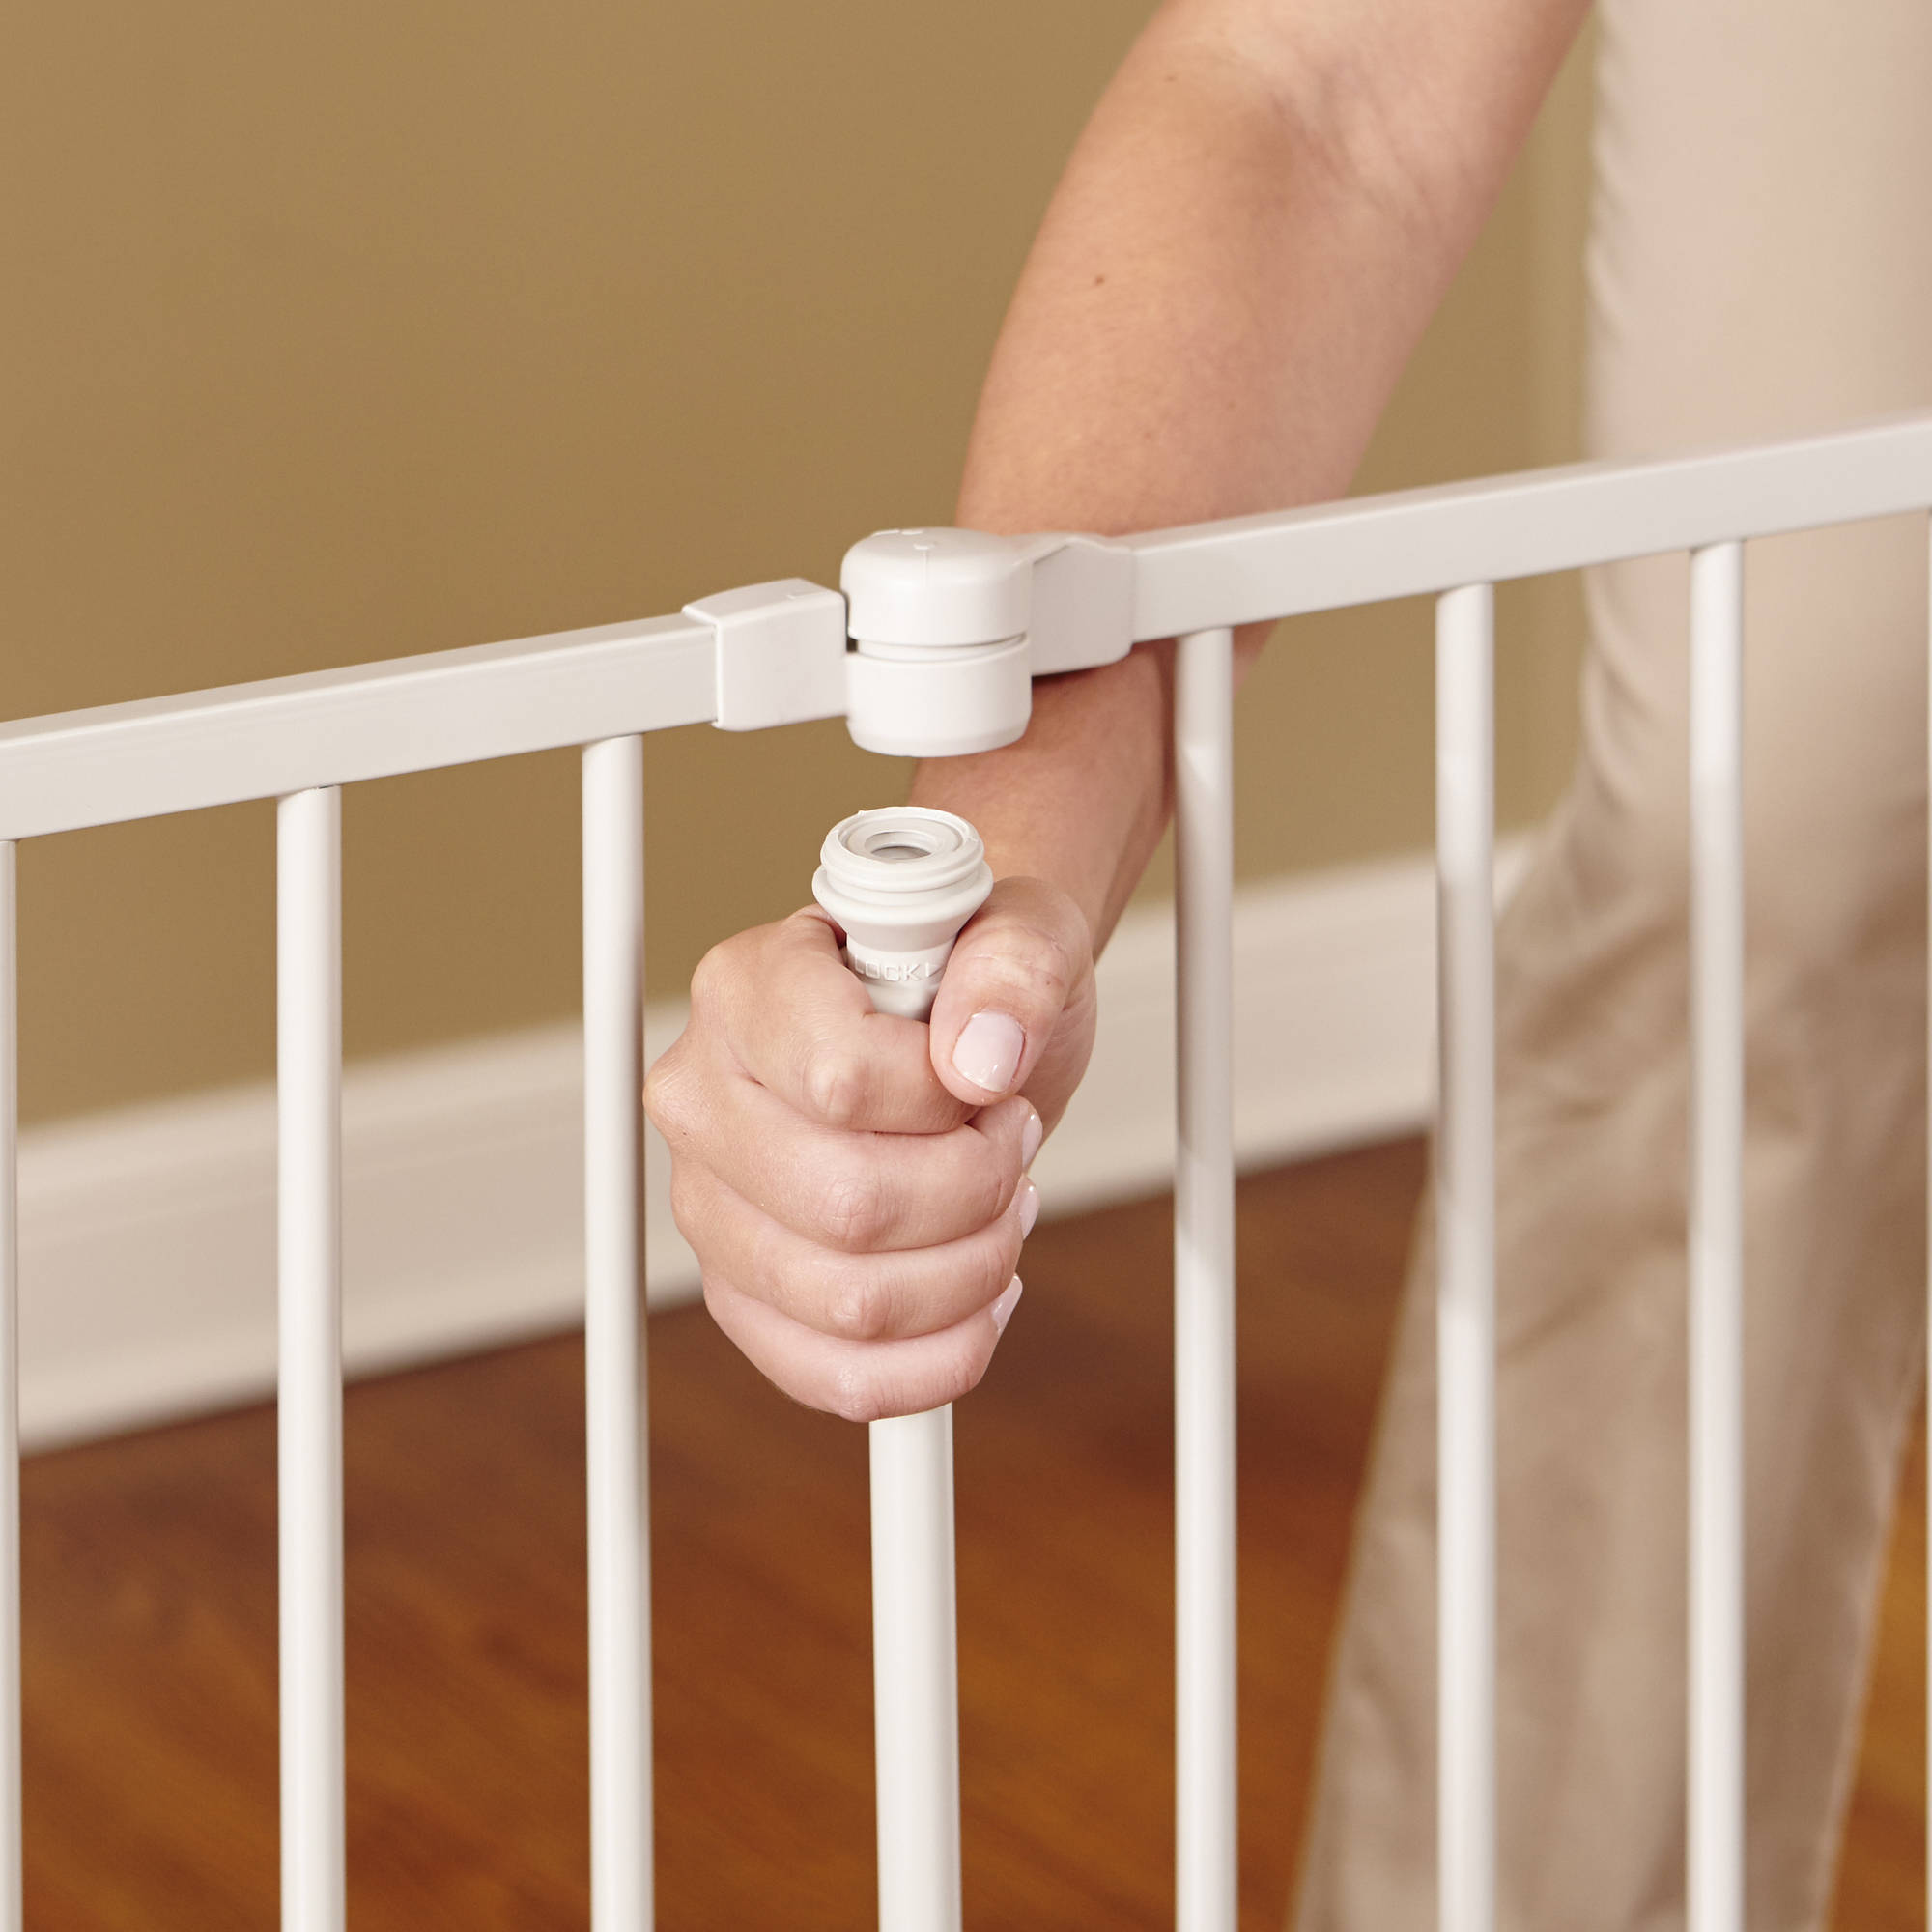 tips northstar gate north states superyard 6 sided baby gate